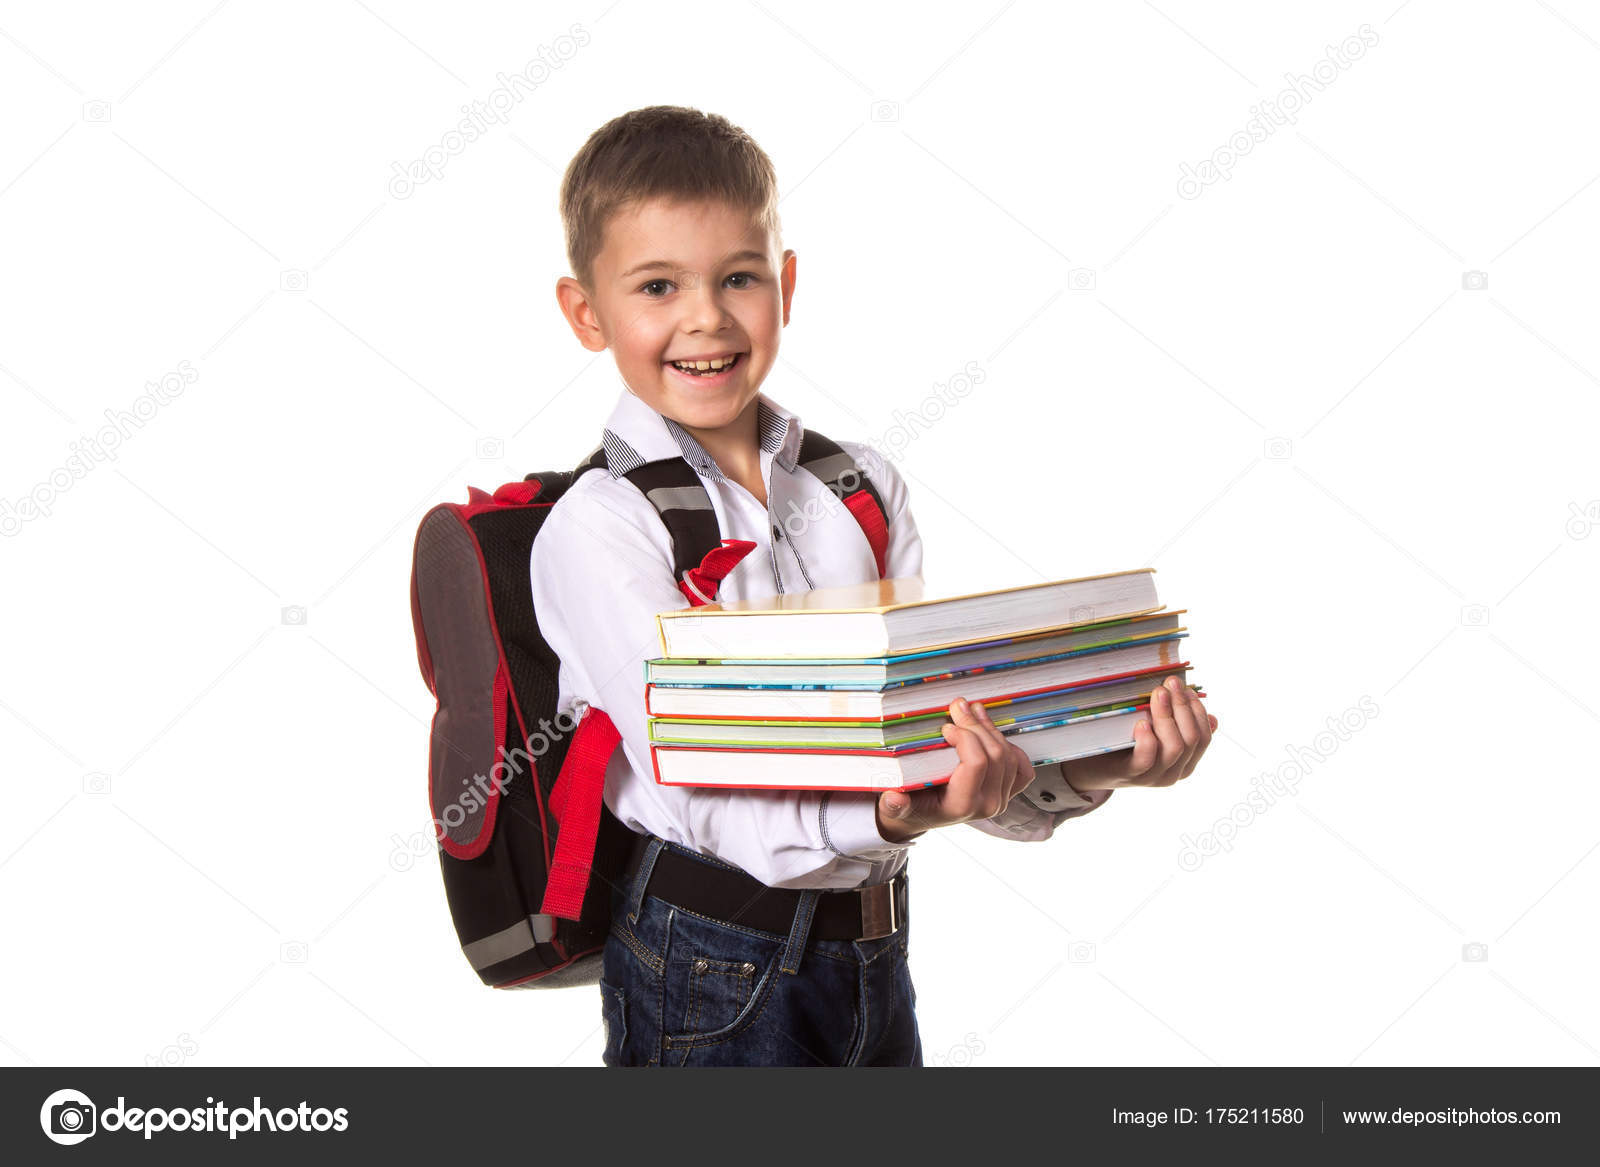 96b83f858a58 Smiling school boy with backpack holding notebooks